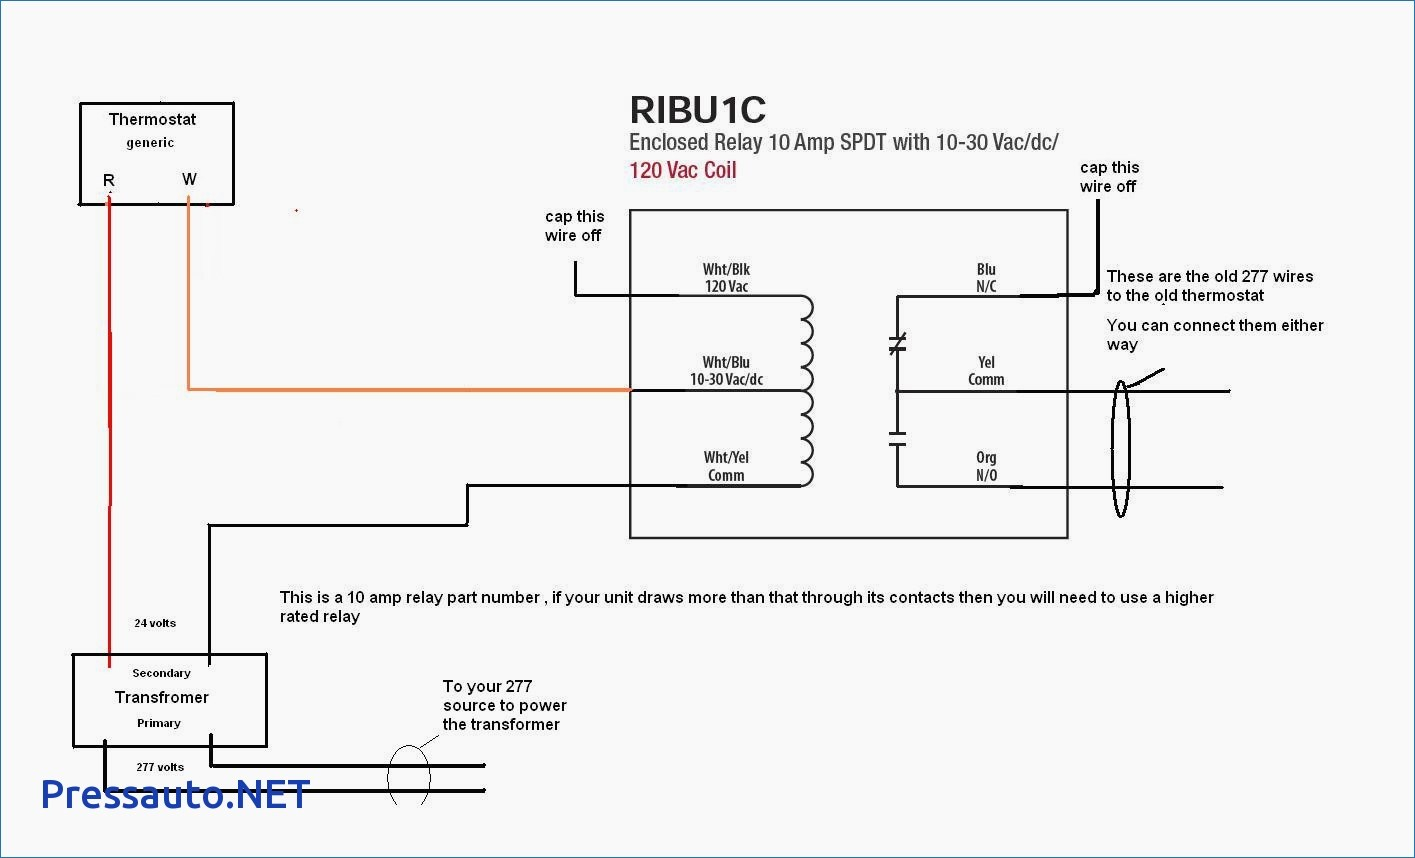 hight resolution of rib2401b wiring diagram rib2401b wiring diagram awesome functional devices inc rib enclosed rocket engine schematics